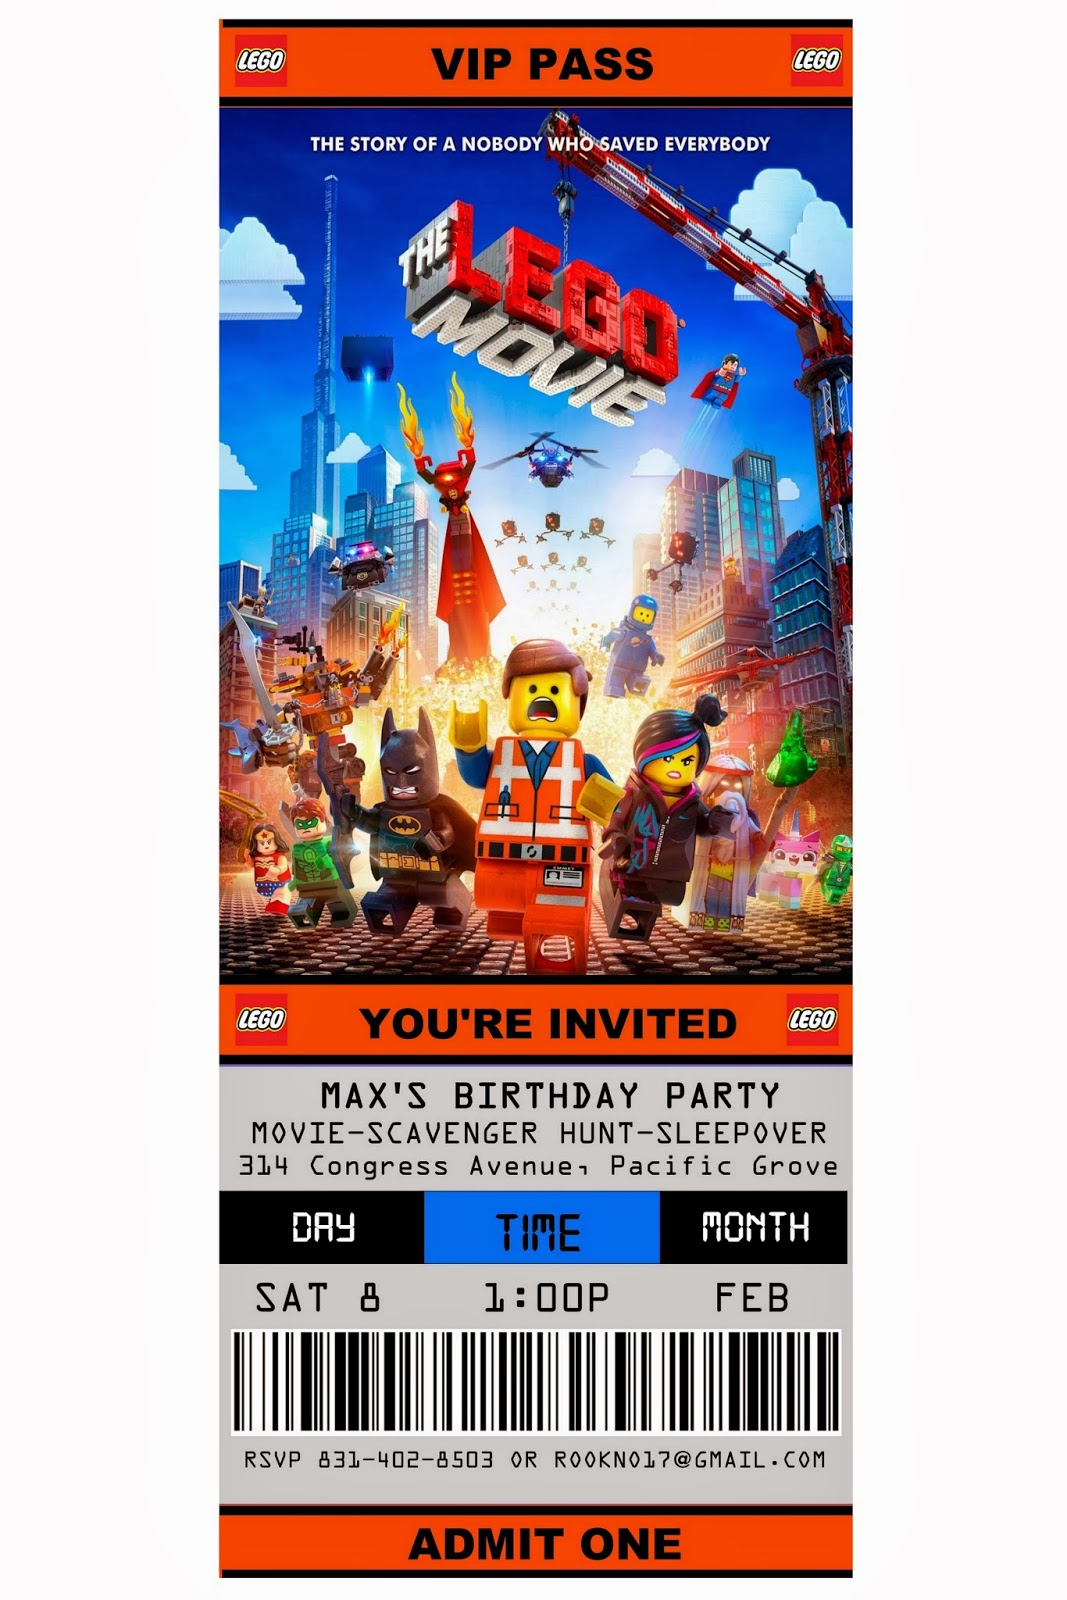 Jennuine By Rook No Free Printable Ticket Style Party - Lego birthday invitation template free